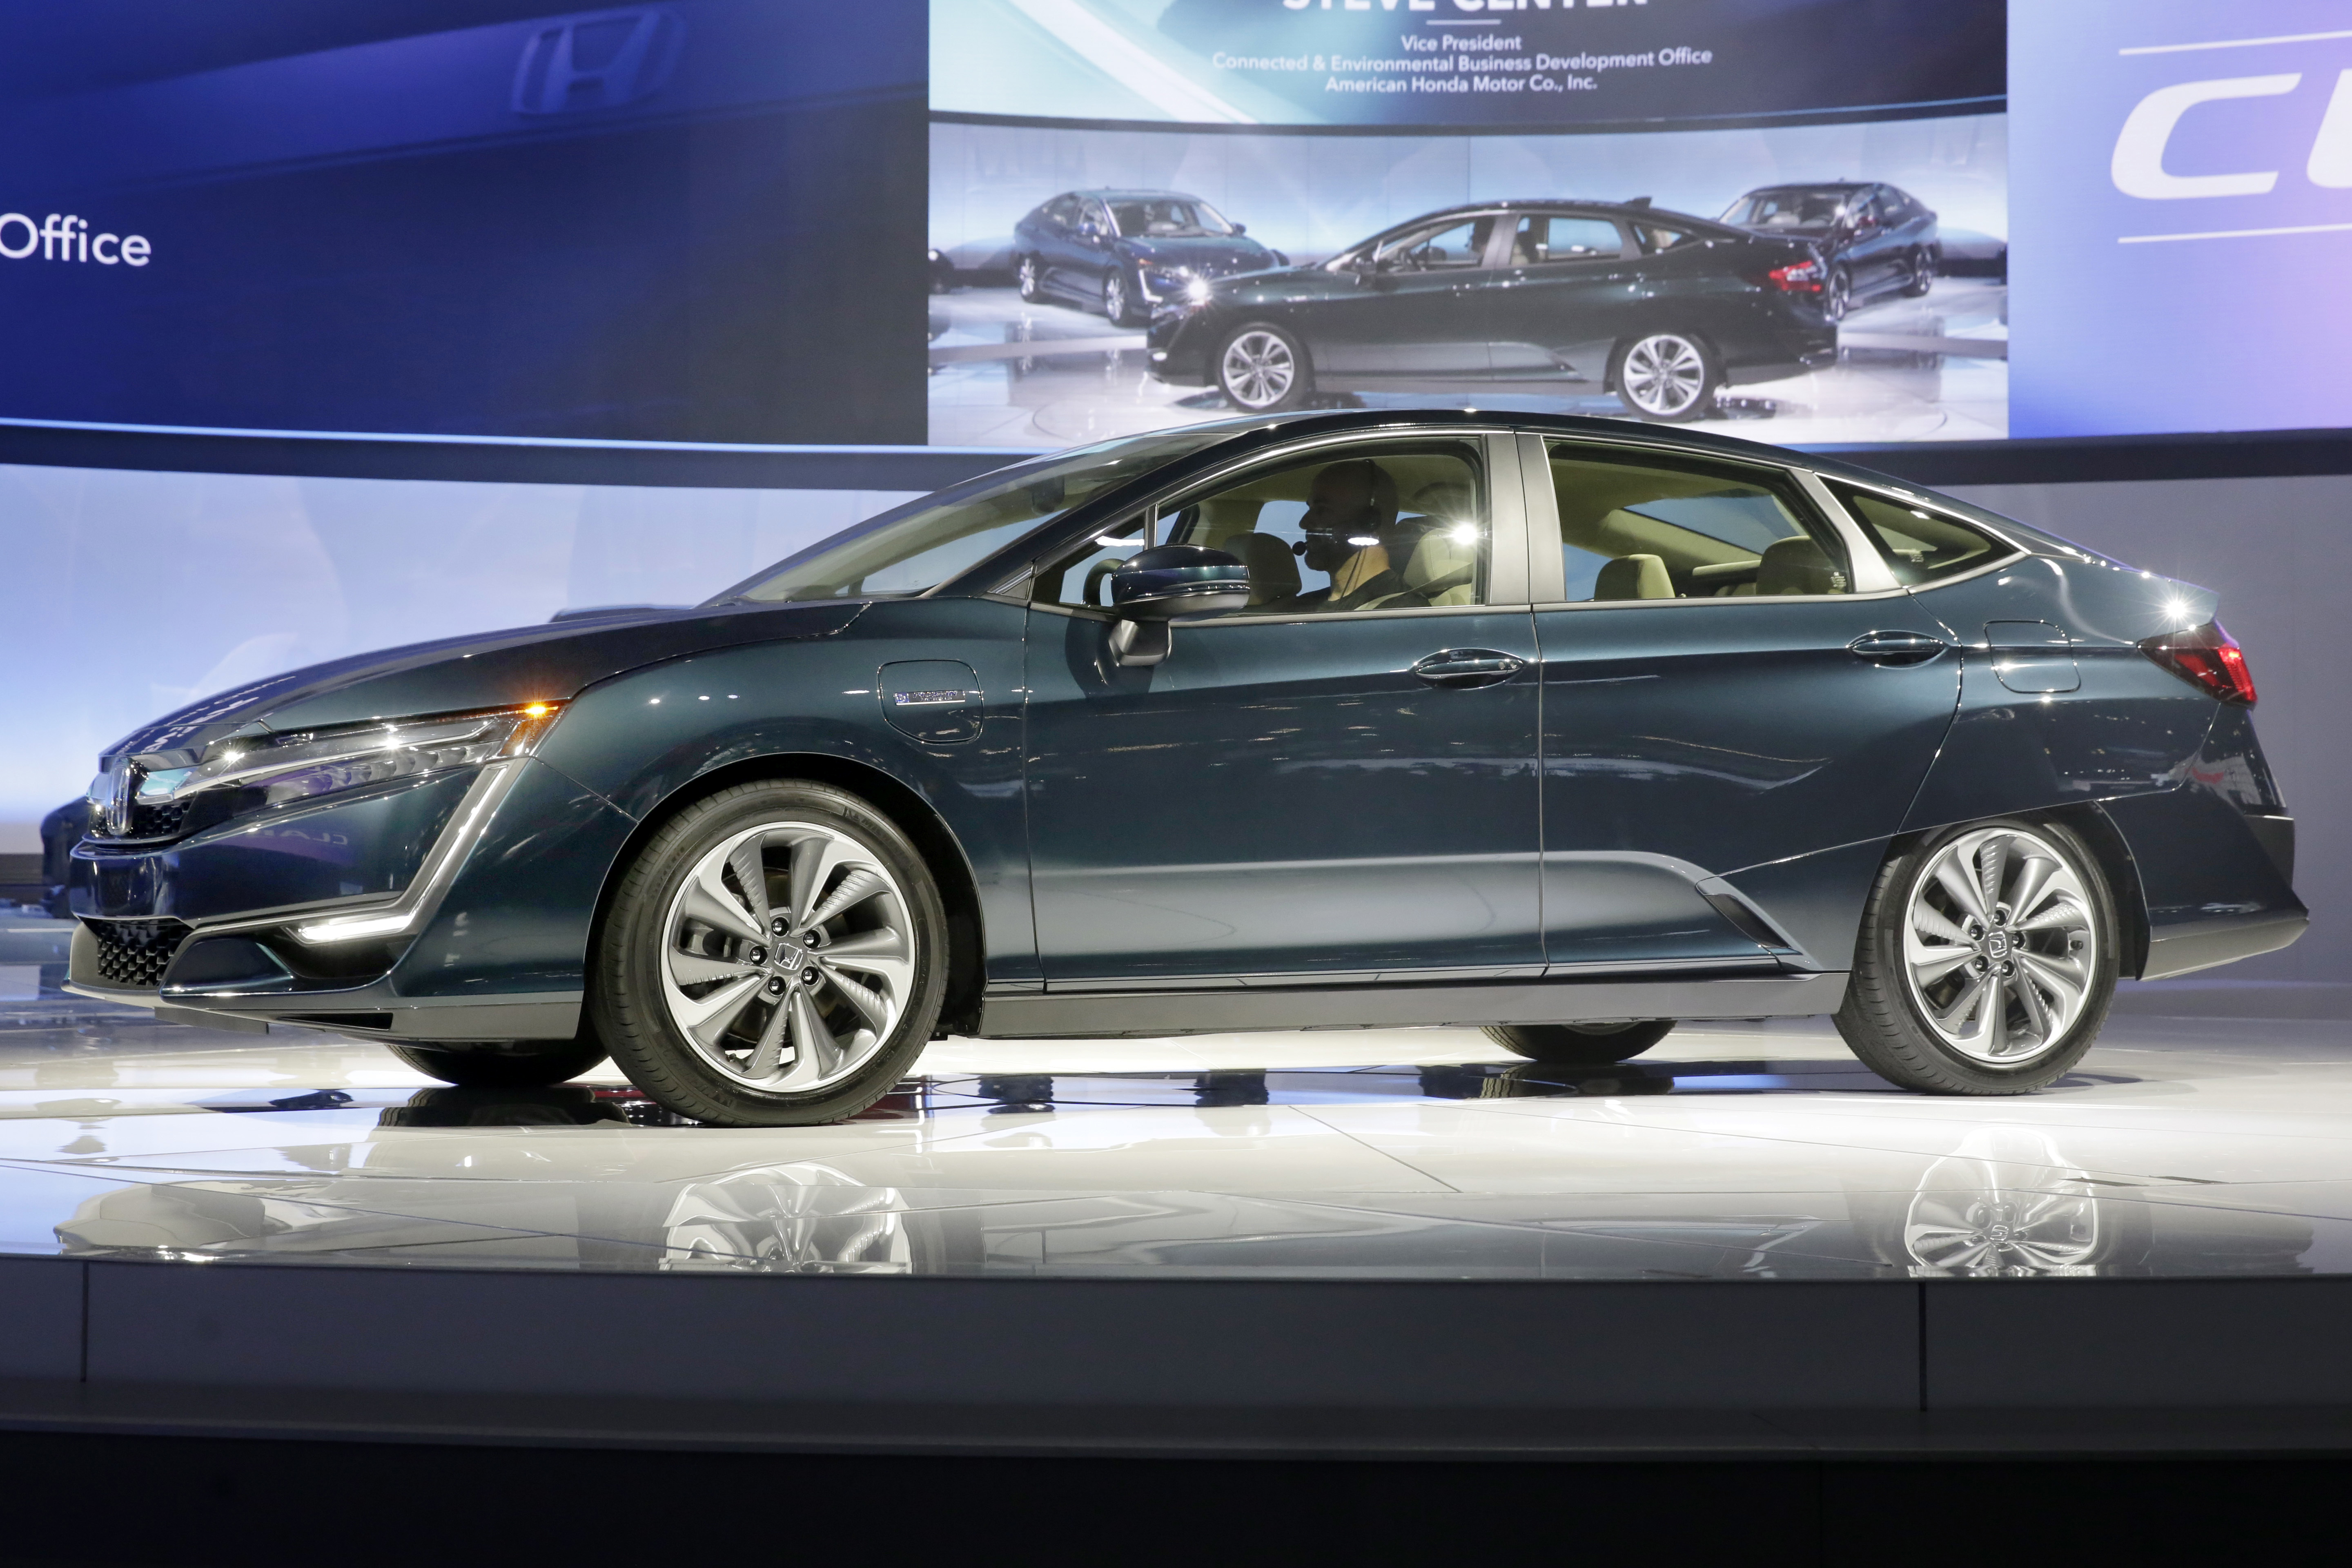 Auto Show Honda-2 The hybrid model of the Honda Clarity is shown during a media preview at the New York International Auto Show, at the Jacob Javits Center in New York, Wednesday, April 12, 2017. (AP Photo/Richard Drew)